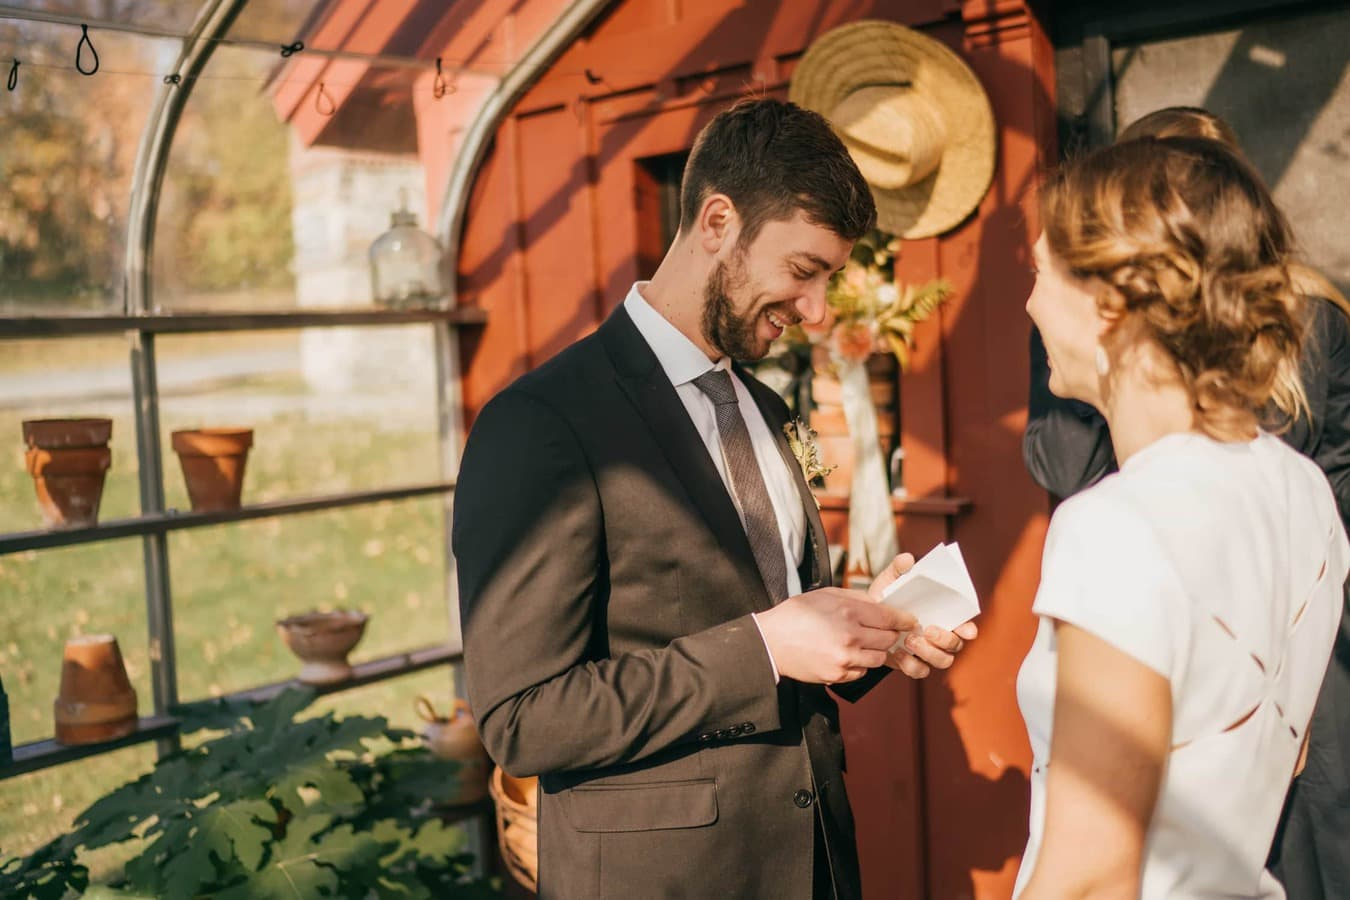 Groom reads wedding vows to bride during ceremony in Catskills.